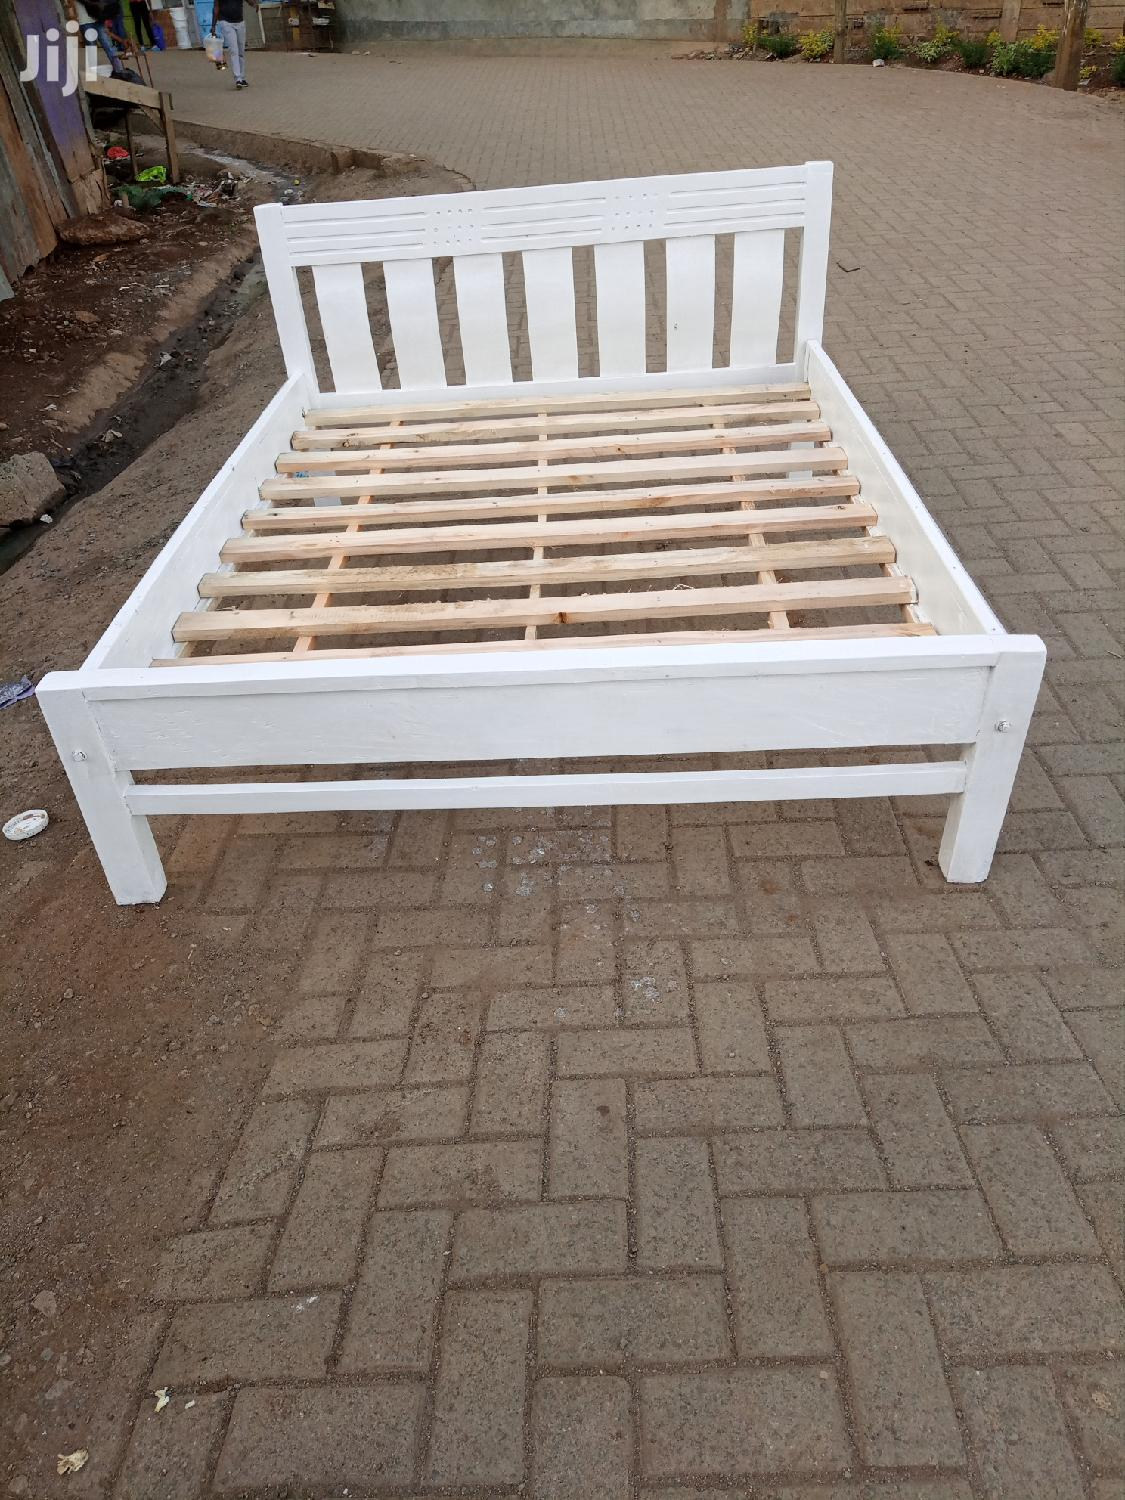 5 By 6 New Bed On Sale